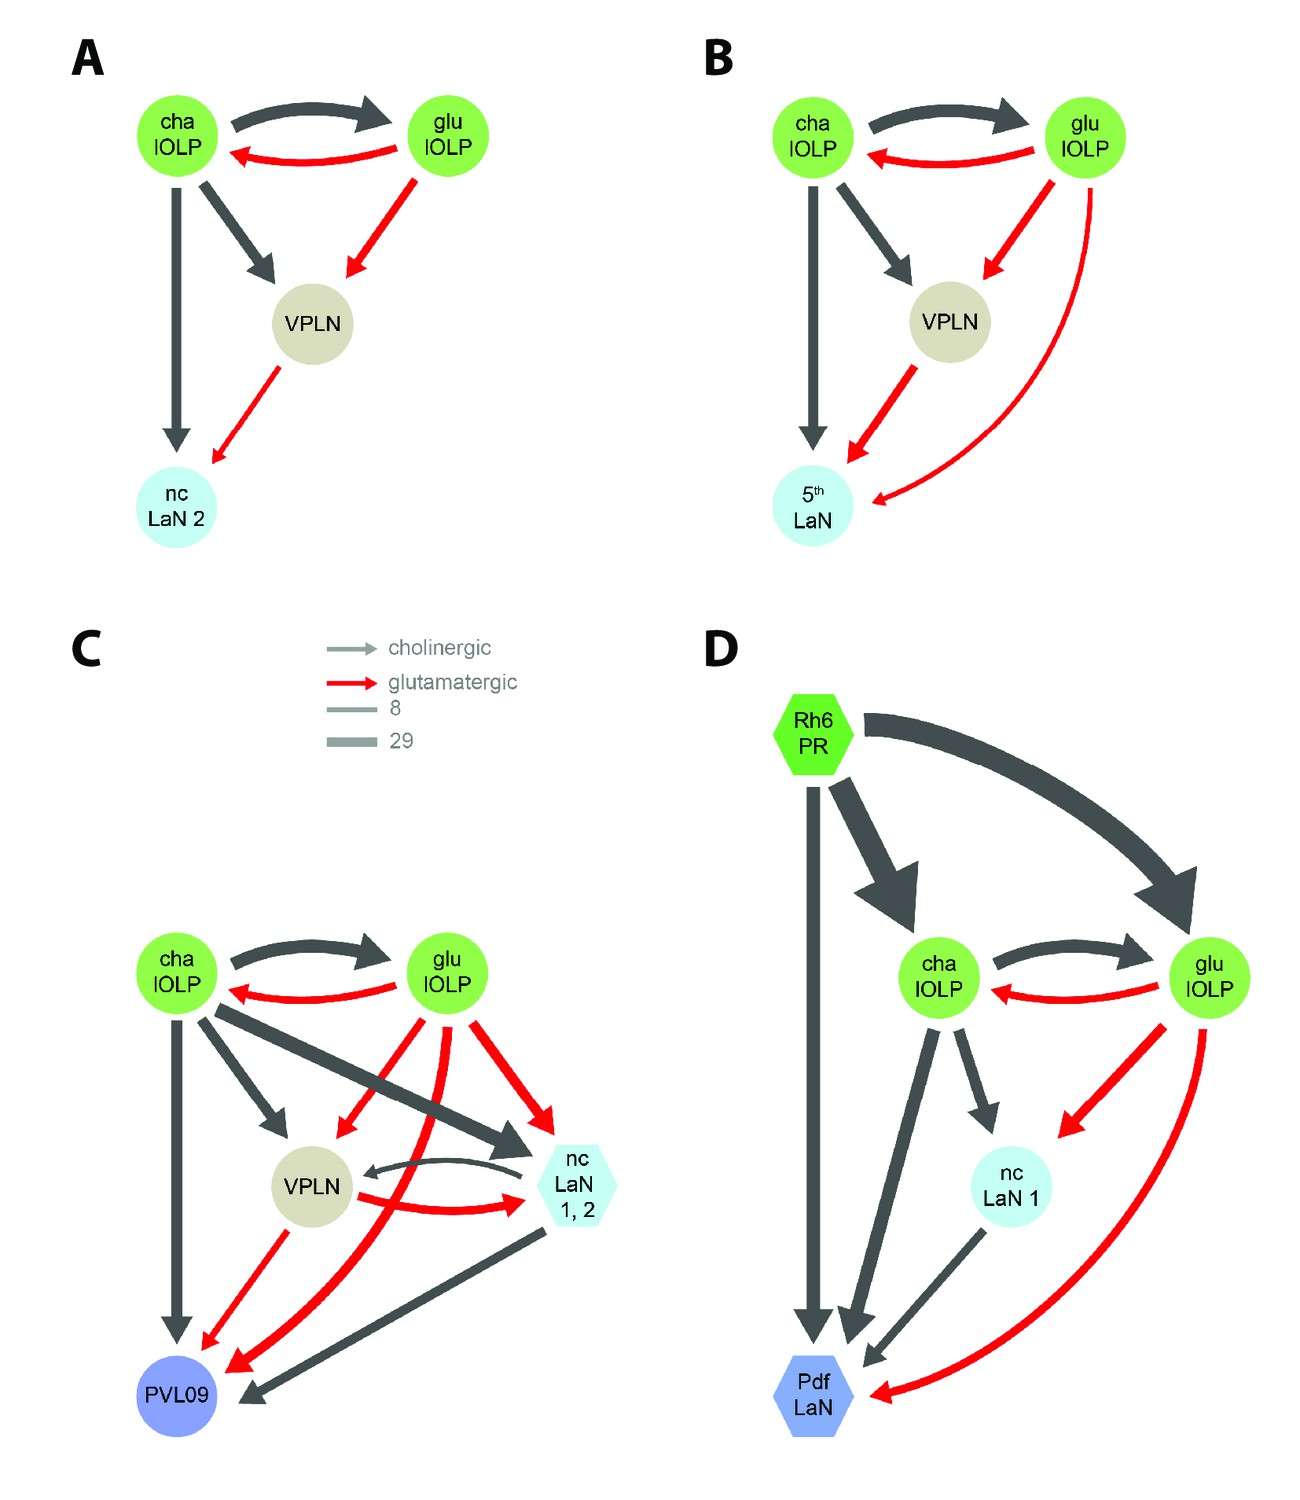 Organization Of The Drosophila Larval Visual Circuit Elife If You Are Looking For Formal Wiring Diagram Network Motifs Nc Lan 2 5th Pvl09 And Pdf Lans